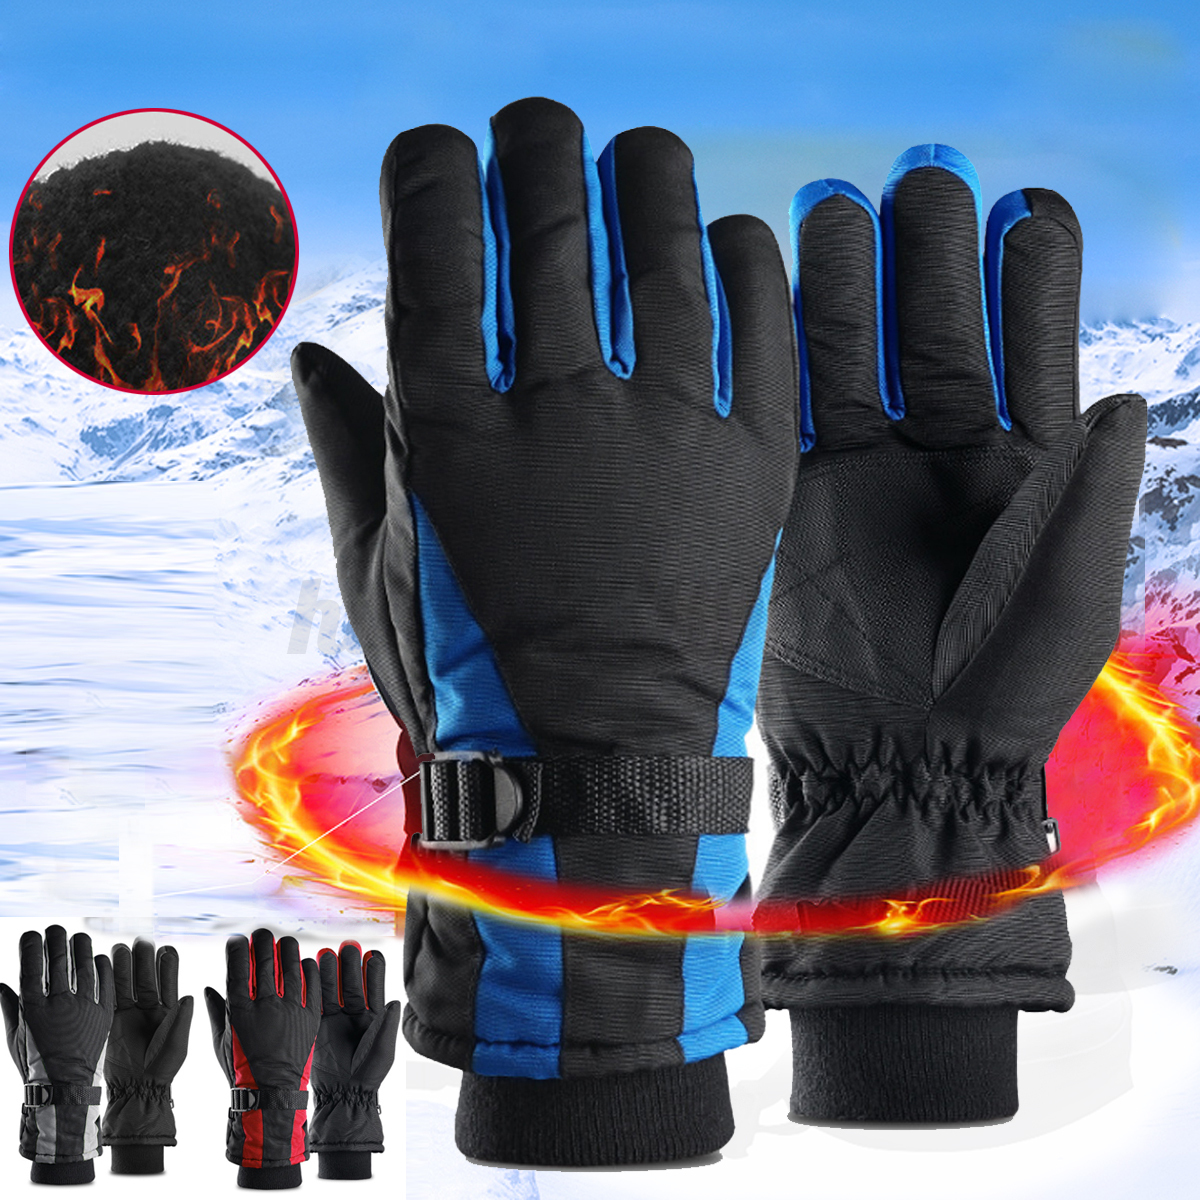 Ski Snowboard Winter Sport Gloves Thermal Warm Waterproof AntiSlip Men Women